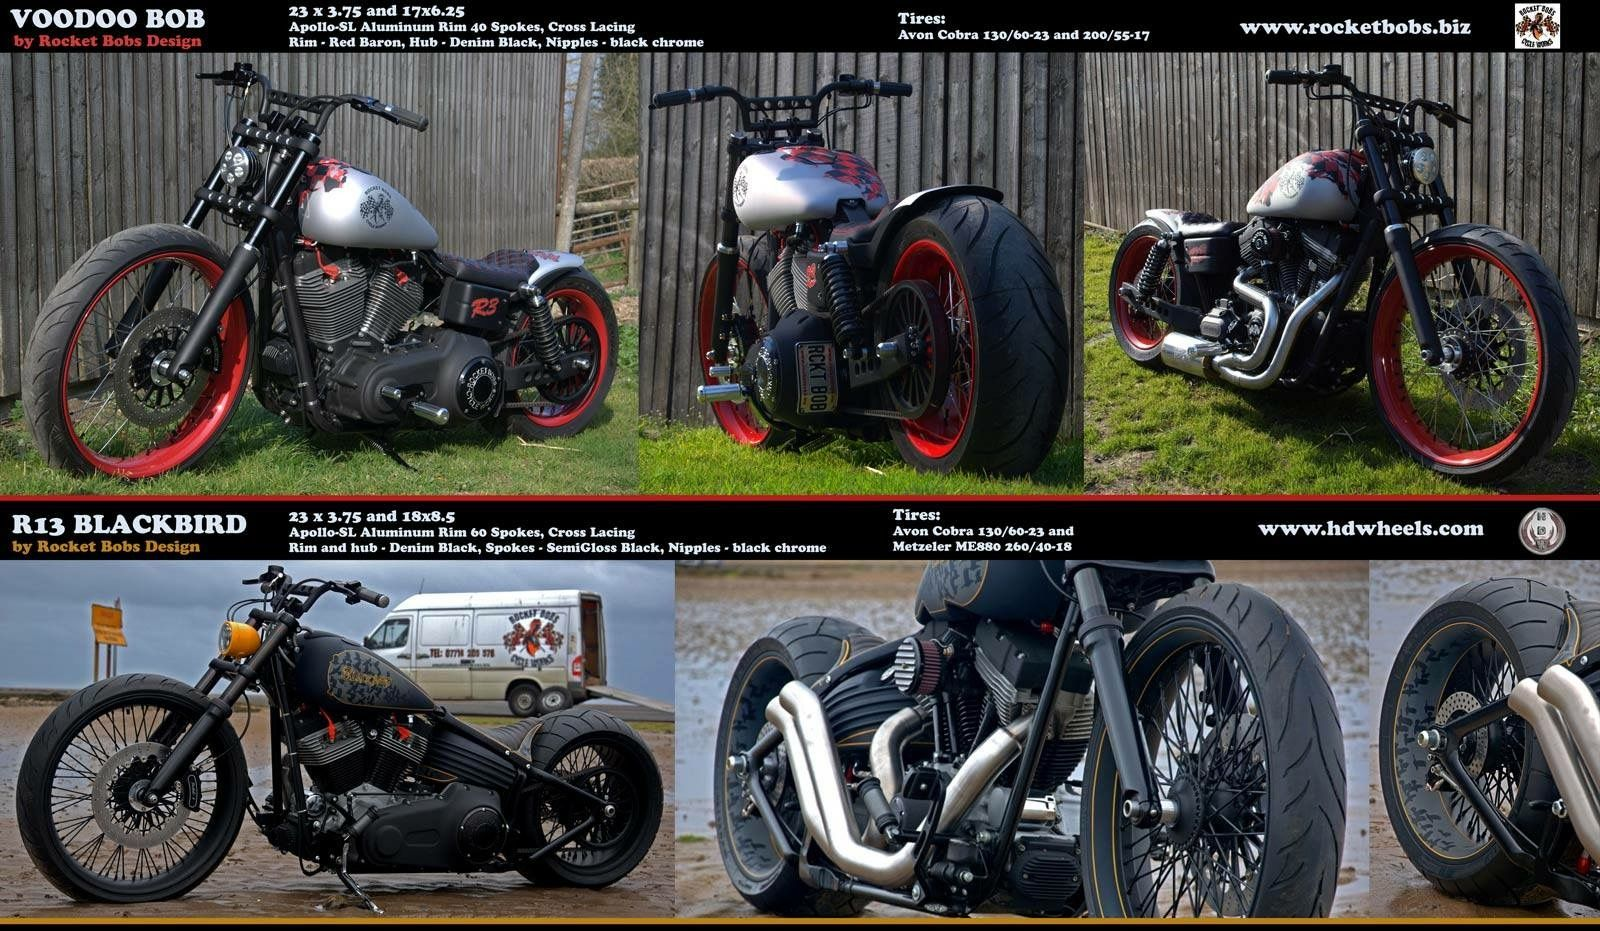 Pin By Motorcycles Club Store Up2 7 On Harley Davidson Motorcycles Motorcycle Culture Harley Davidson Motorcycles Motorcycle Clubs